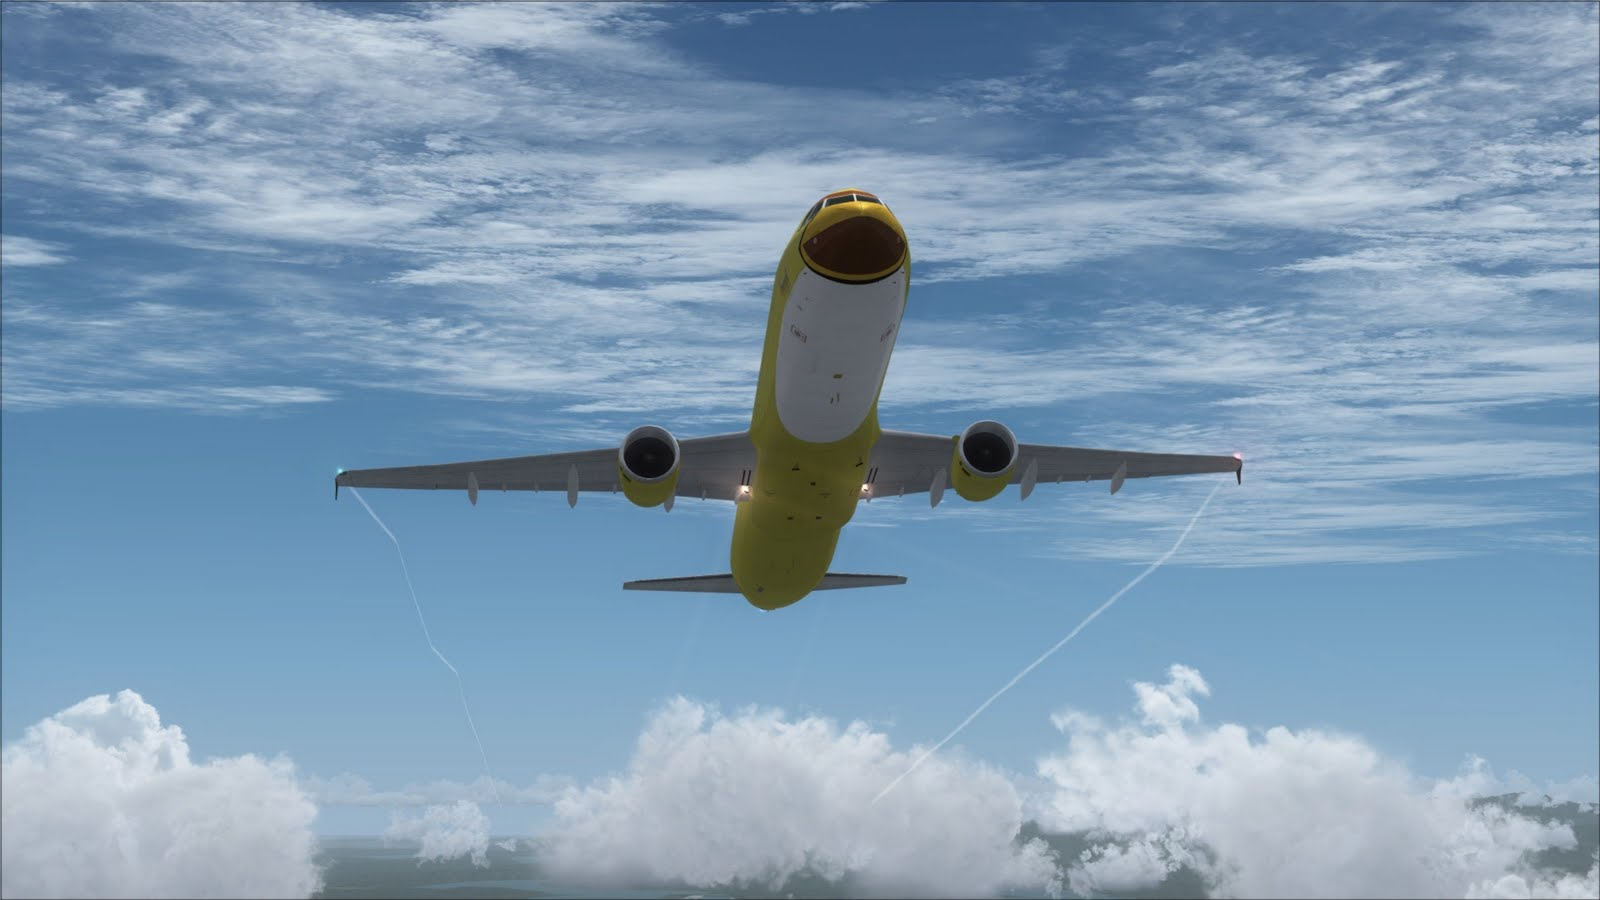 Animated Watch Wallpaper For Mobile Angry Birds Airplane Images Amp Video